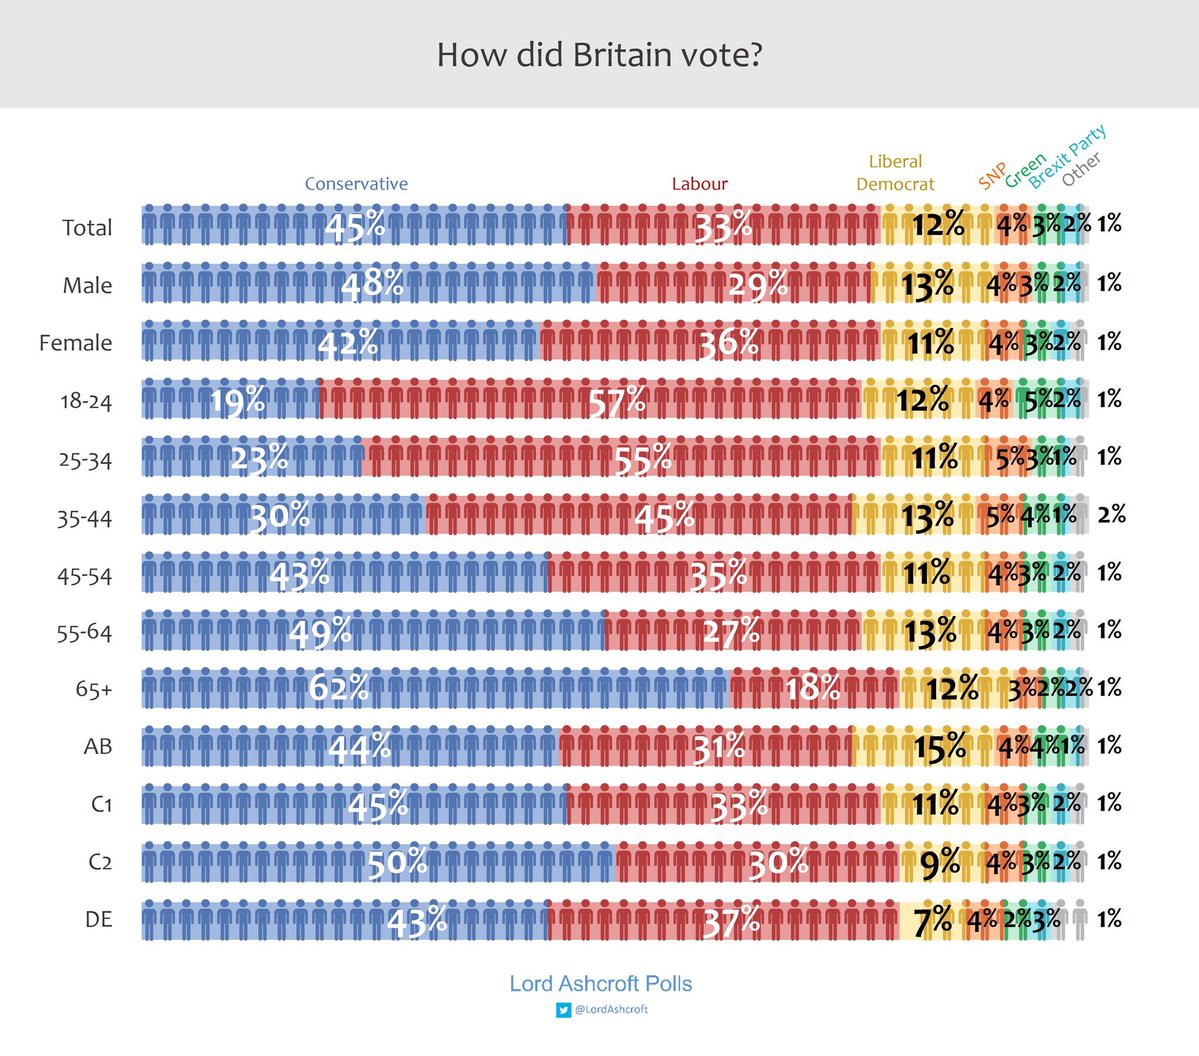 Lord Ashcroft's post-vote poll. Under 25s 19% Conservative to 57% Labour; for 65 and over the reverse, 62% Cons to 18% Labour